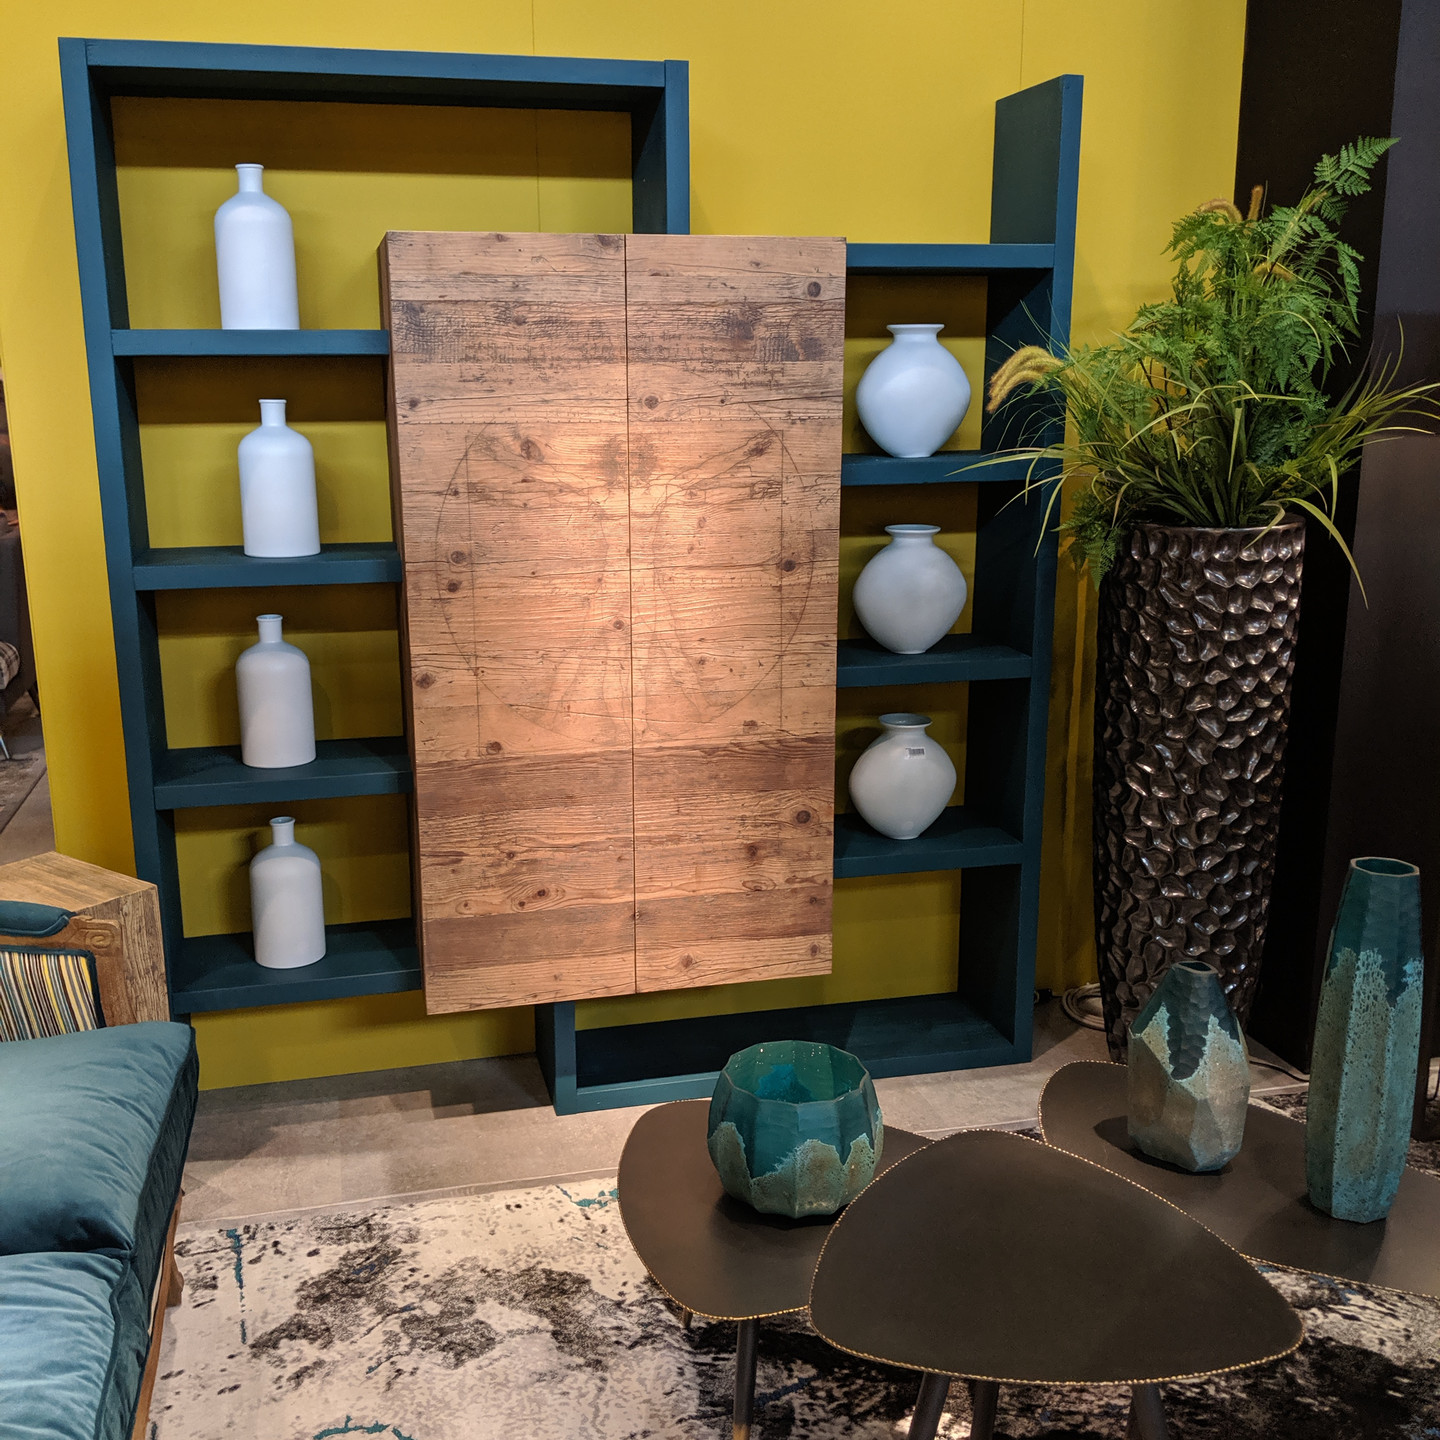 Mustard Yellow Wall with Turquoise and Wood Shelving Unit